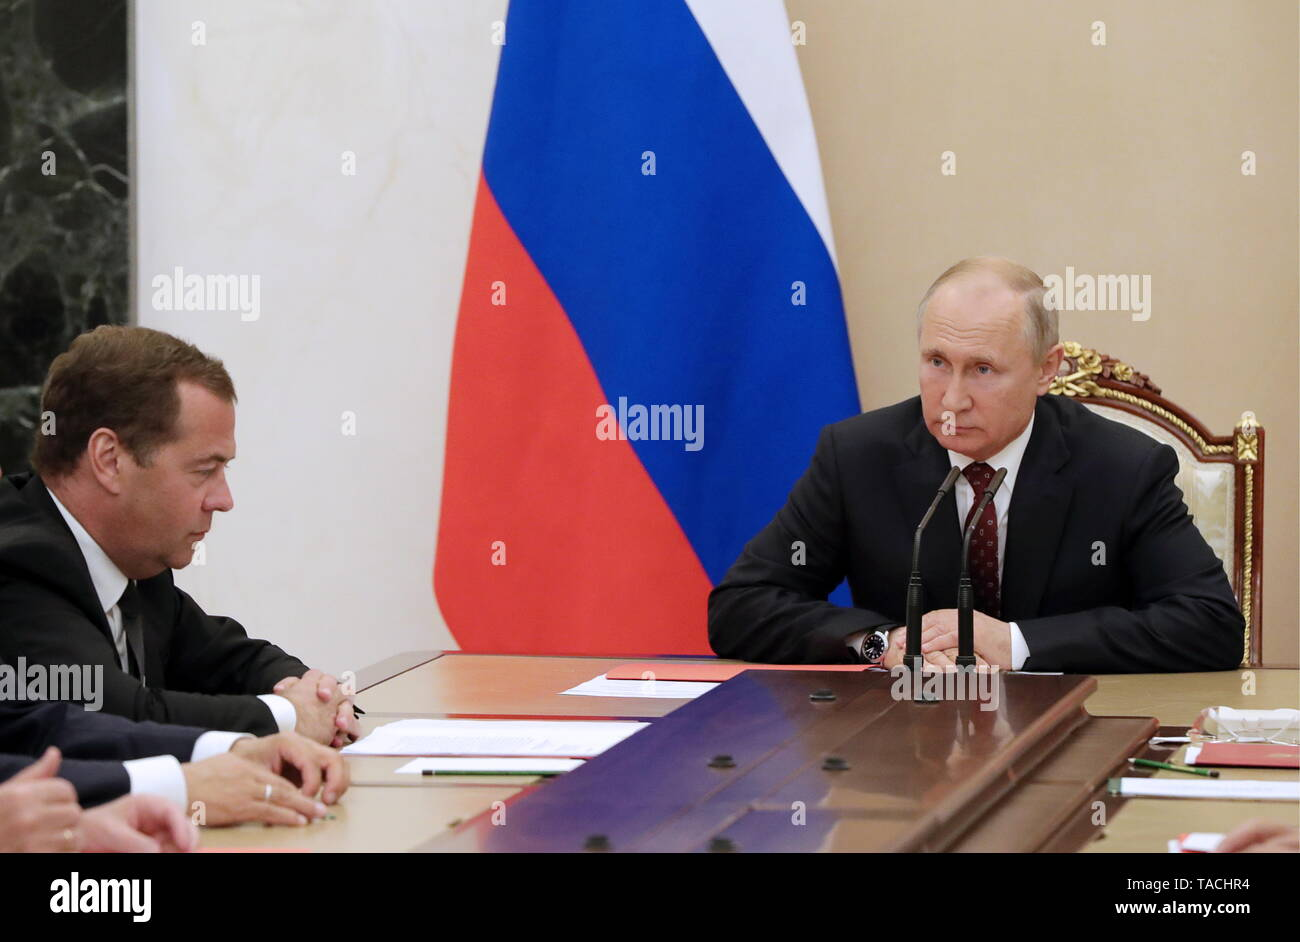 Moscow, Russia. 24th May, 2019. MOSCOW, RUSSIA - MAY 24, 2019: Russia's Prime Minister Dmitry Medvedev (L) and Russia's President Vladimir Putin during a Russian Security Council meeting at the Moscow Kremlin. Mikhail Klimentyev/Russian Presidential Press and Information Office/TASS Credit: ITAR-TASS News Agency/Alamy Live News - Stock Image